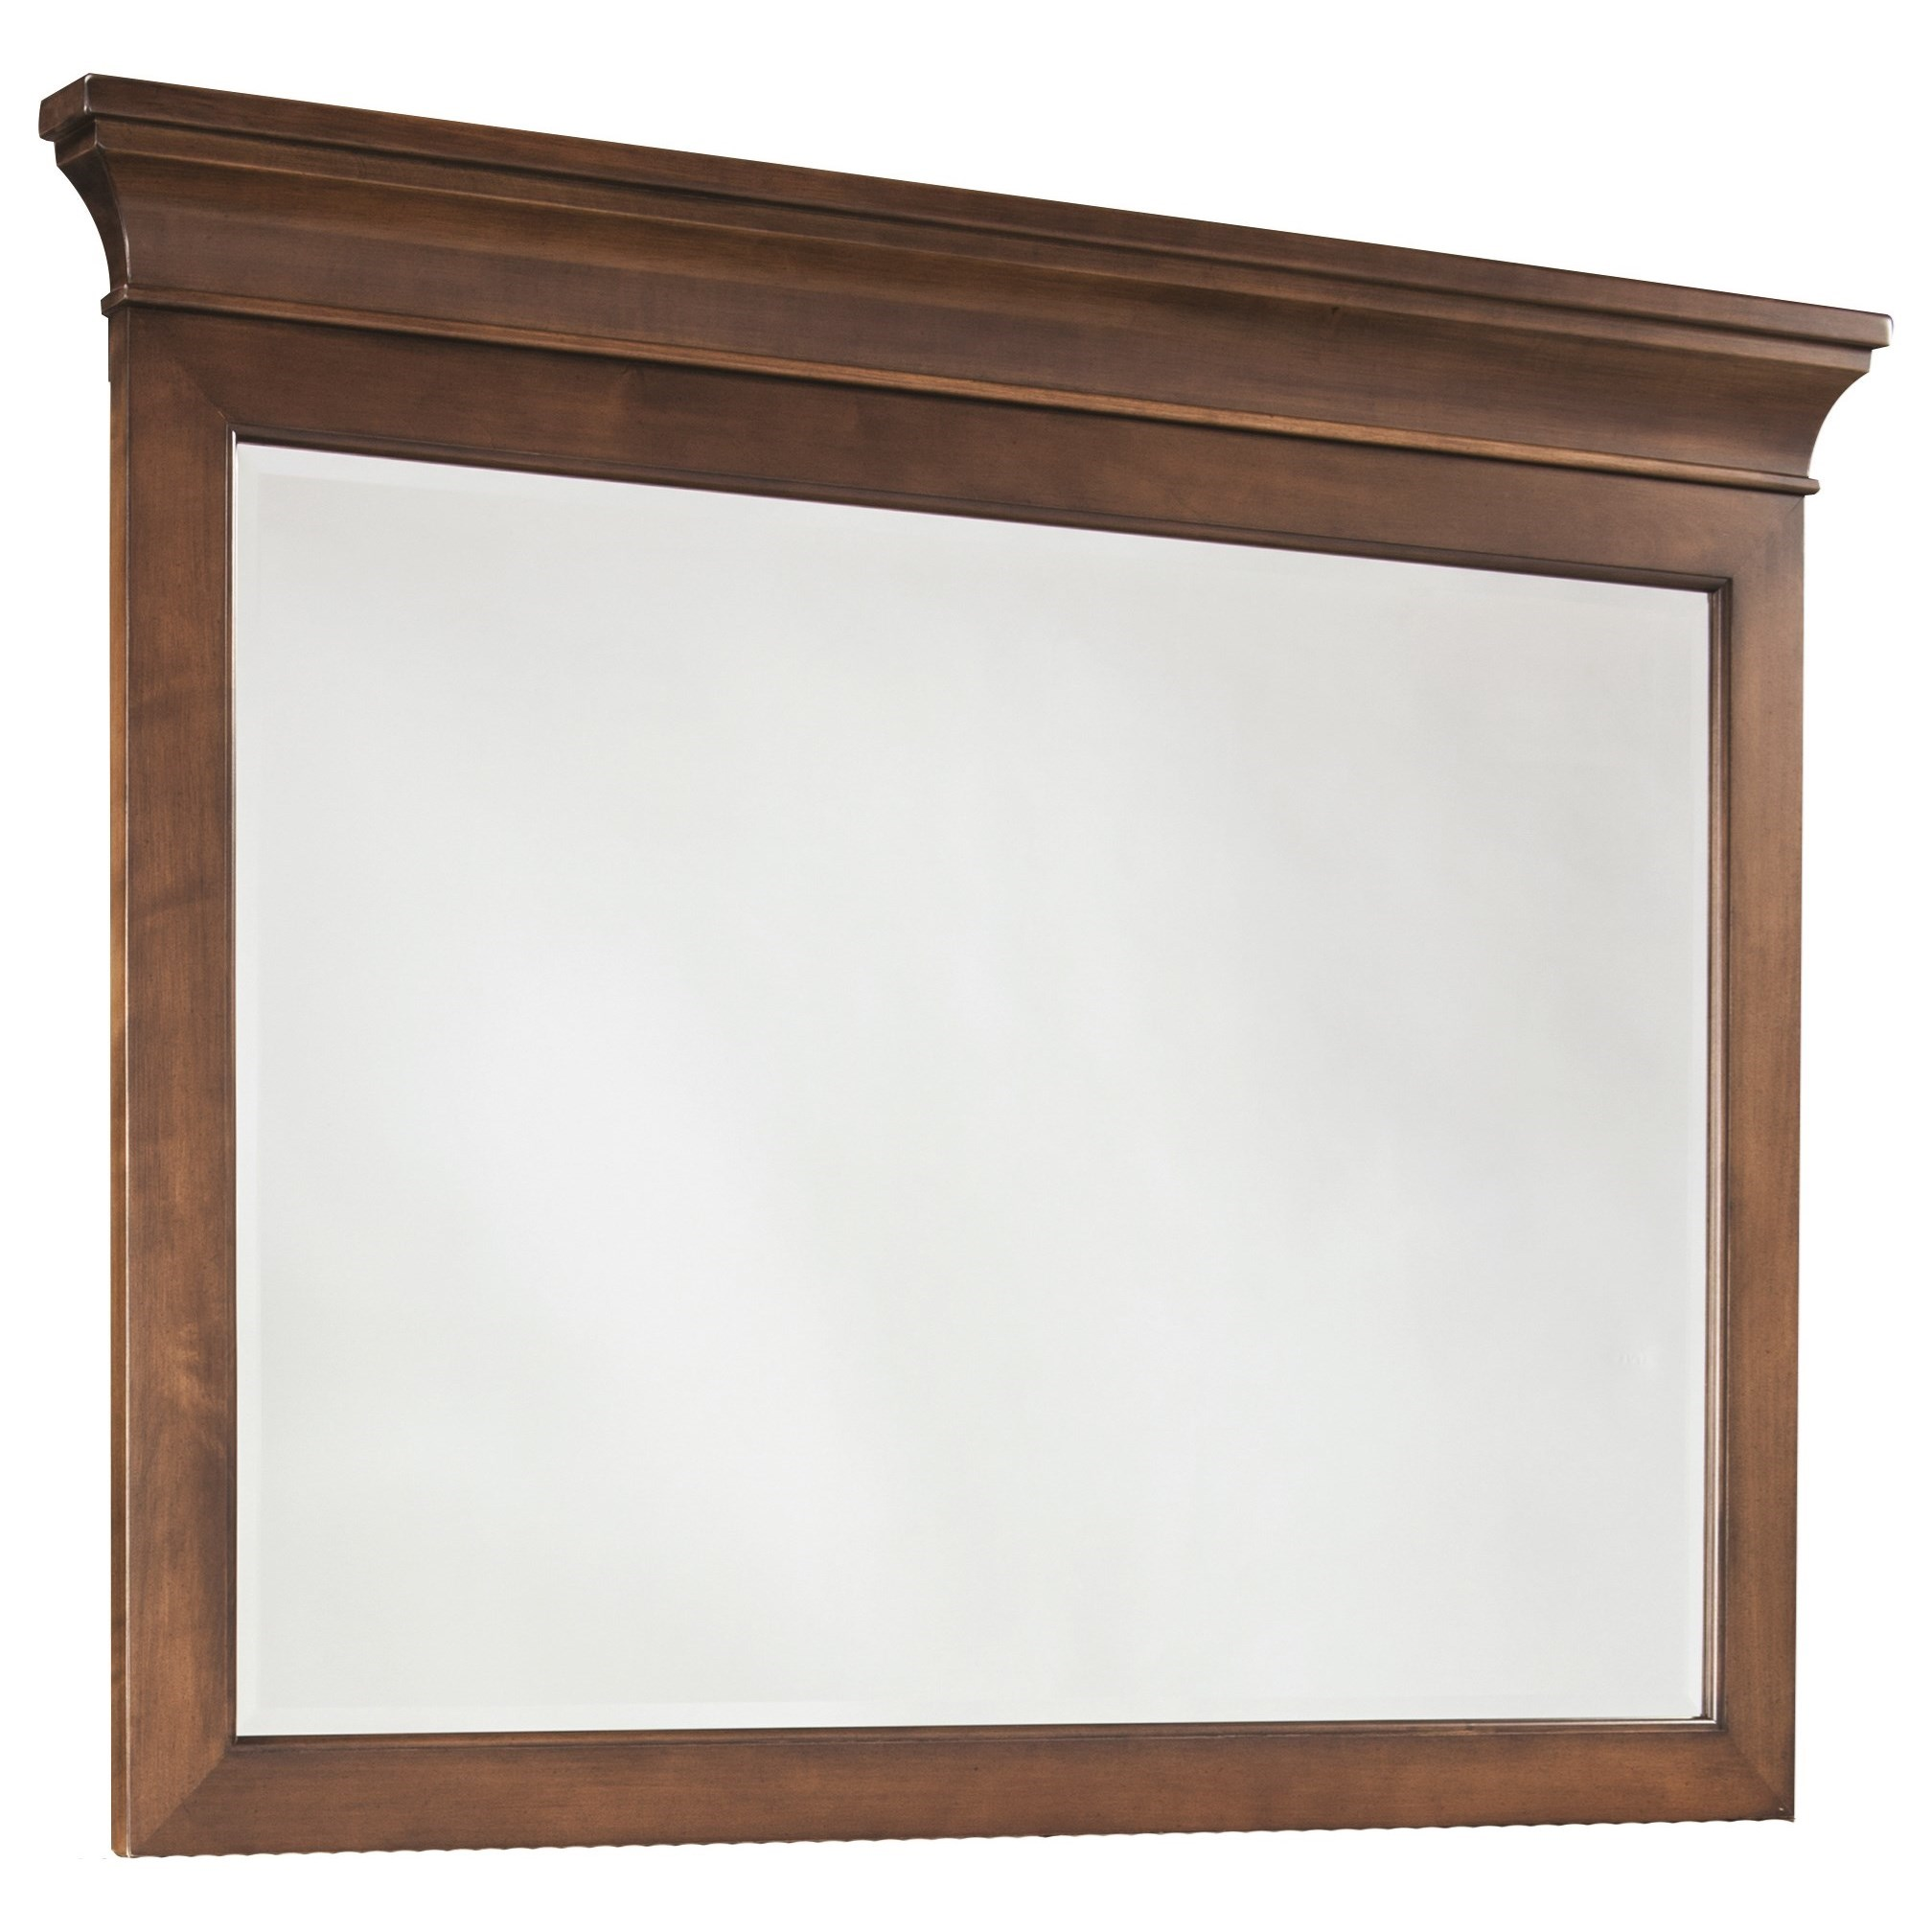 Prominence Mirror by Durham at Bennett's Furniture and Mattresses